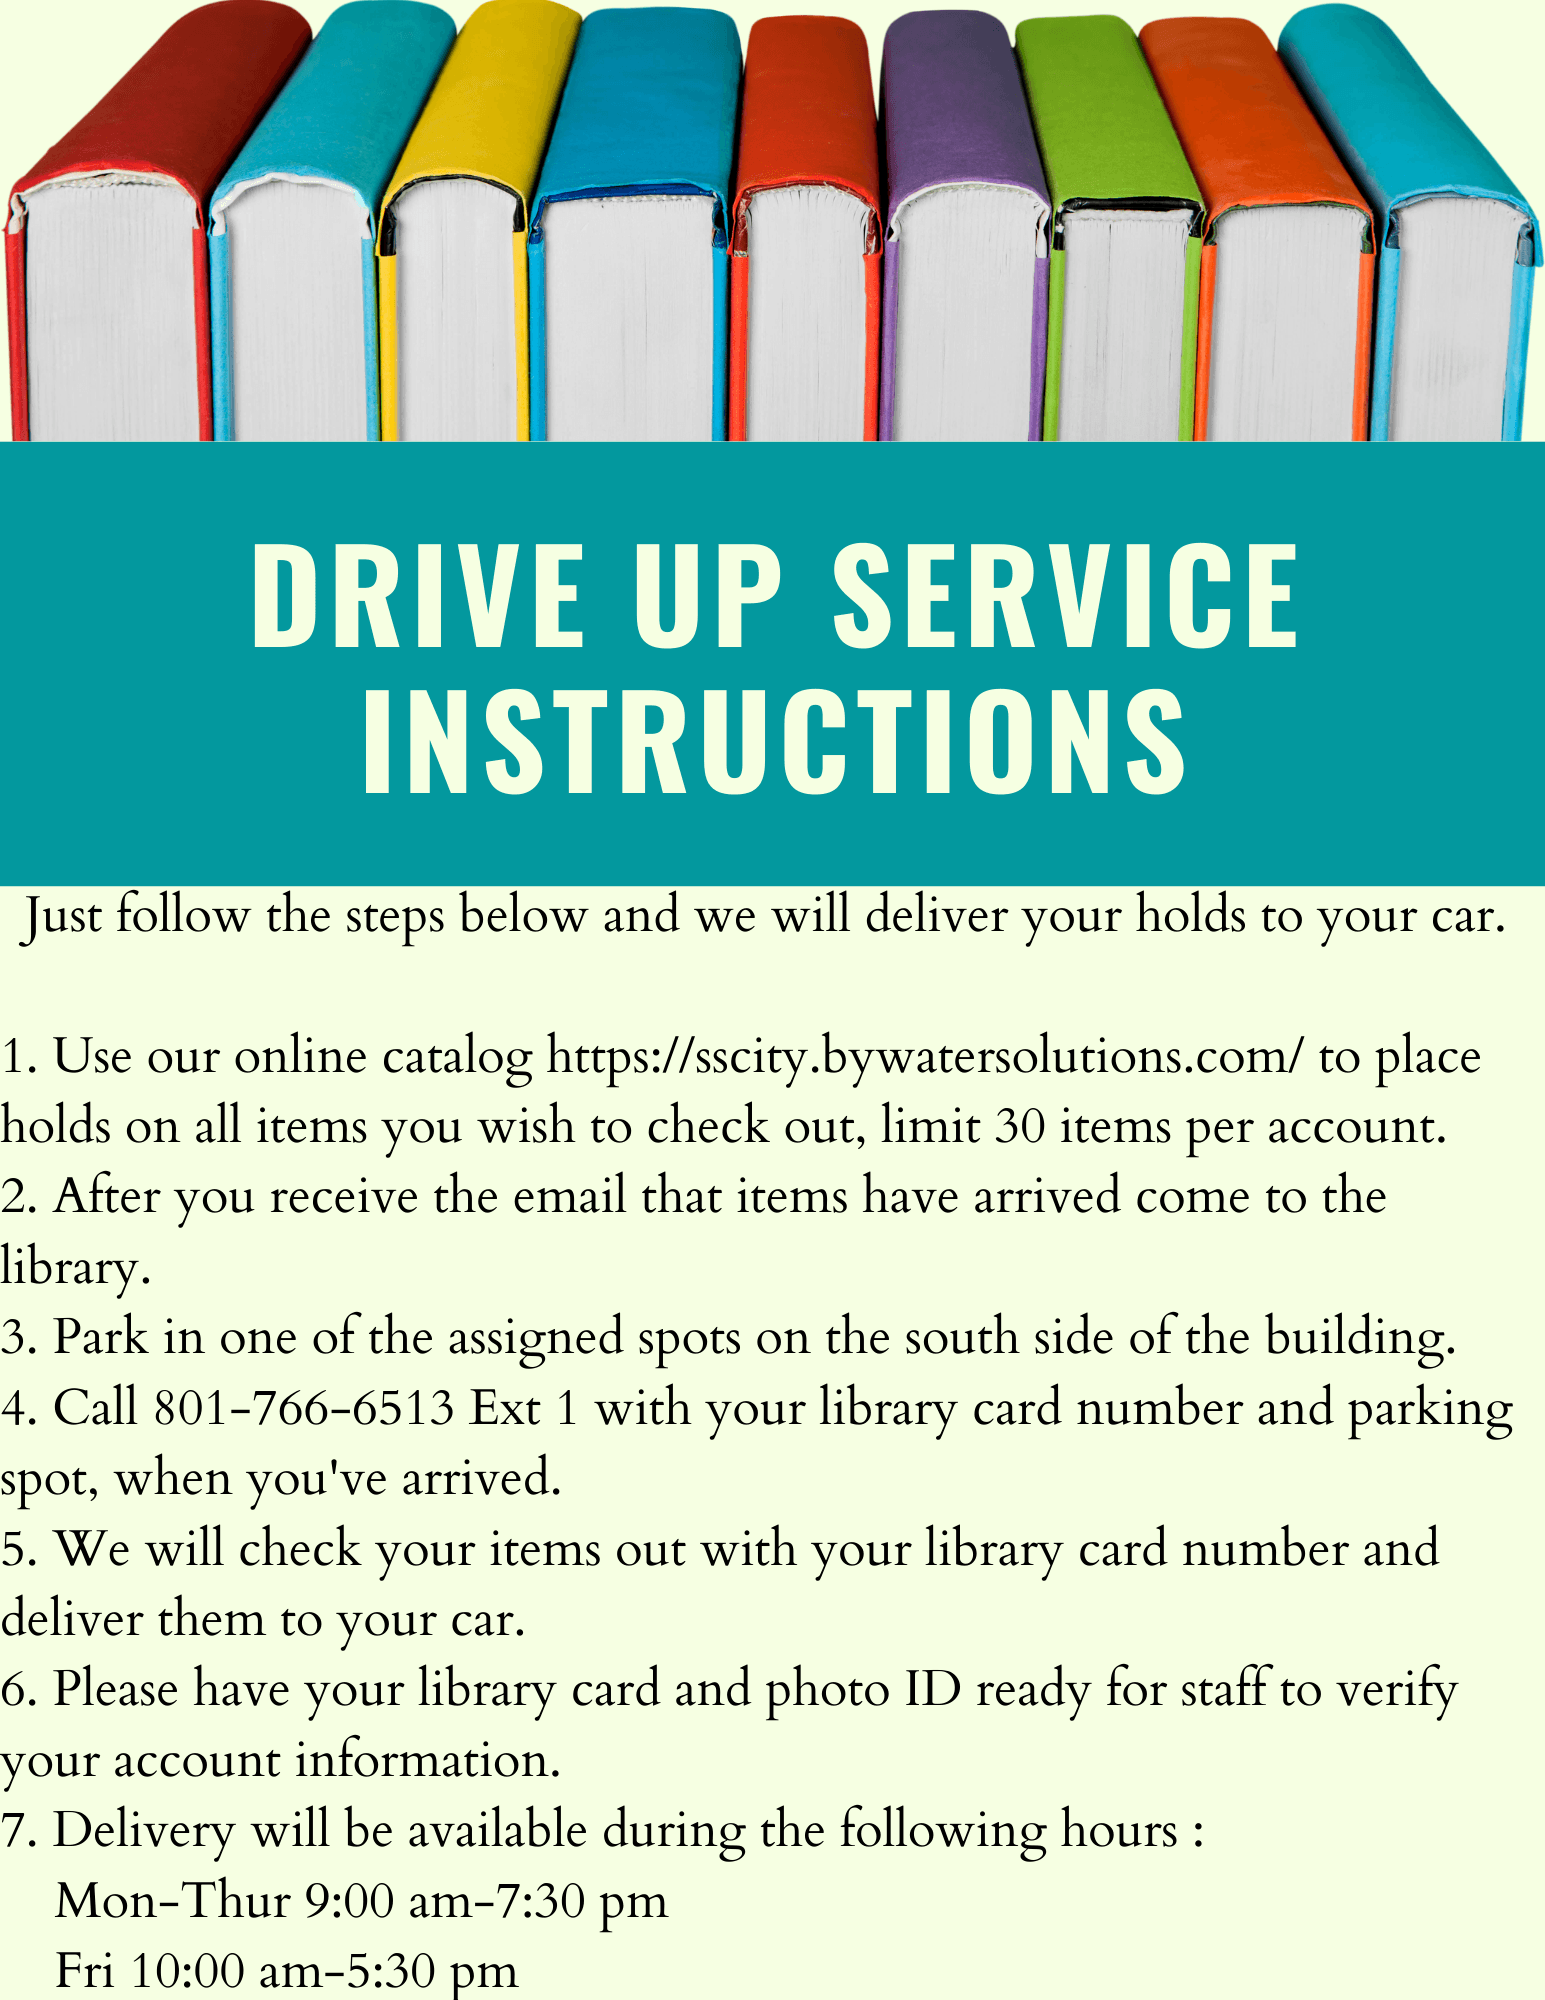 drive up service (1)